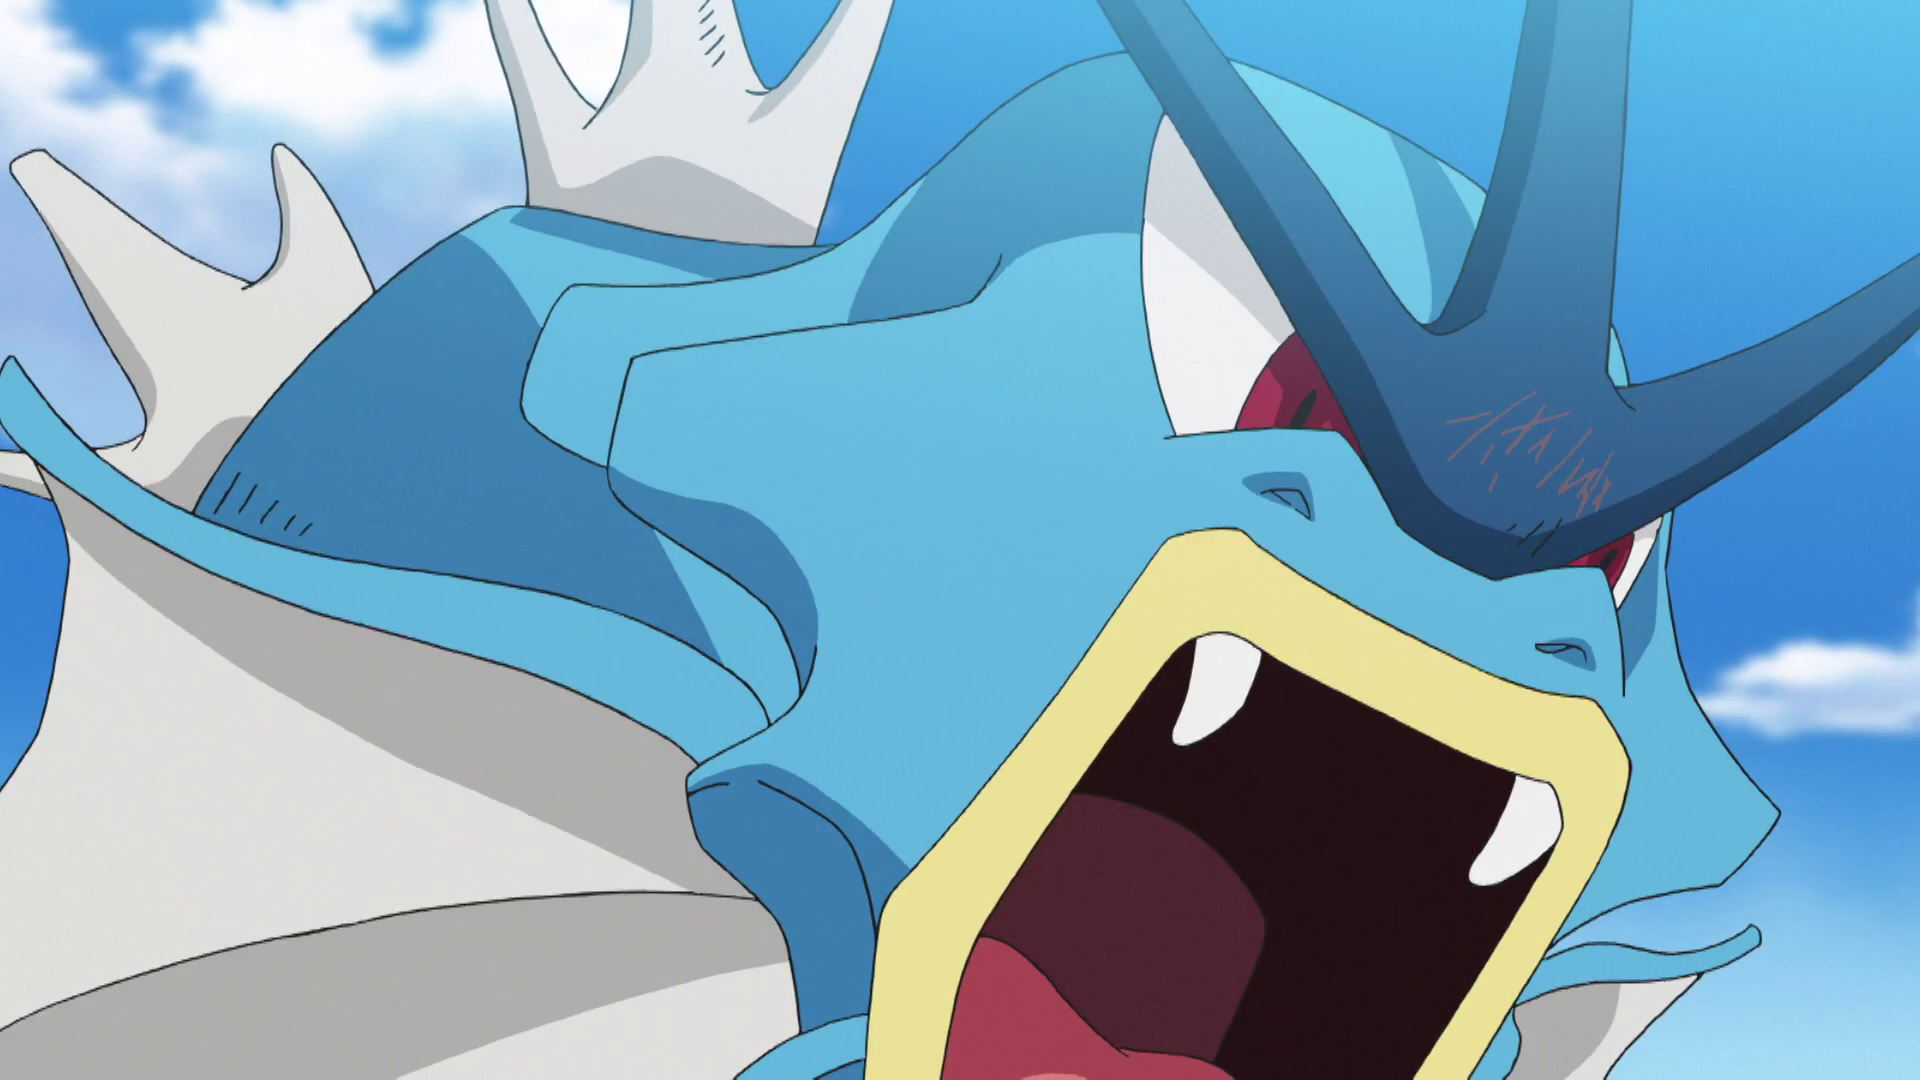 Jessie used Gyarados to prevent Ash and Goh from foiling Team Rocket's scheme to steal a group of wild Ivysaur and Bulbasaur. He was eventually defeated by Pikachu's Thunderbolt. Gyarados's known moves are Ice Fang, Aqua Tail, and Hyper Beam.